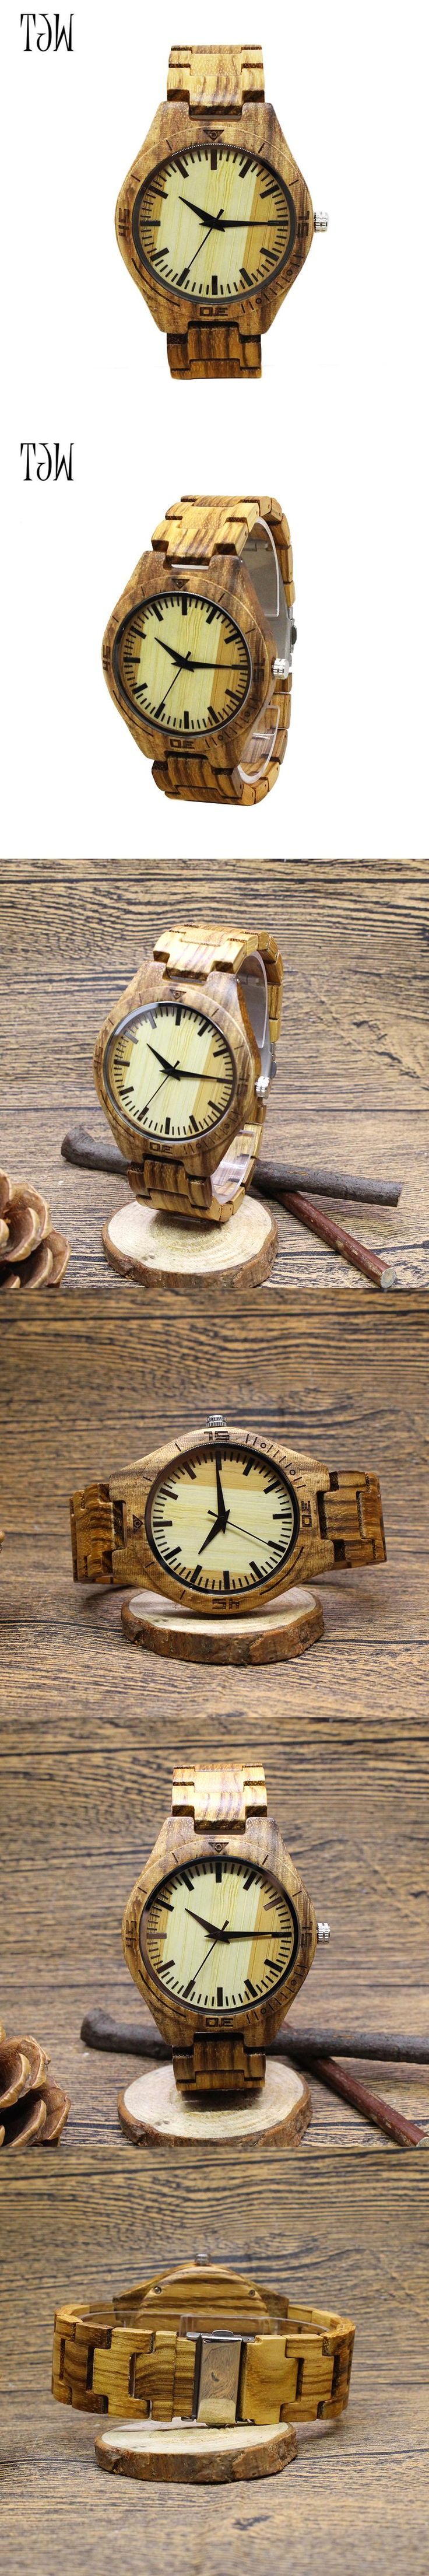 TJW2017 Hot Sale japanese movement wristwatches bamboo wooden watches for men and women